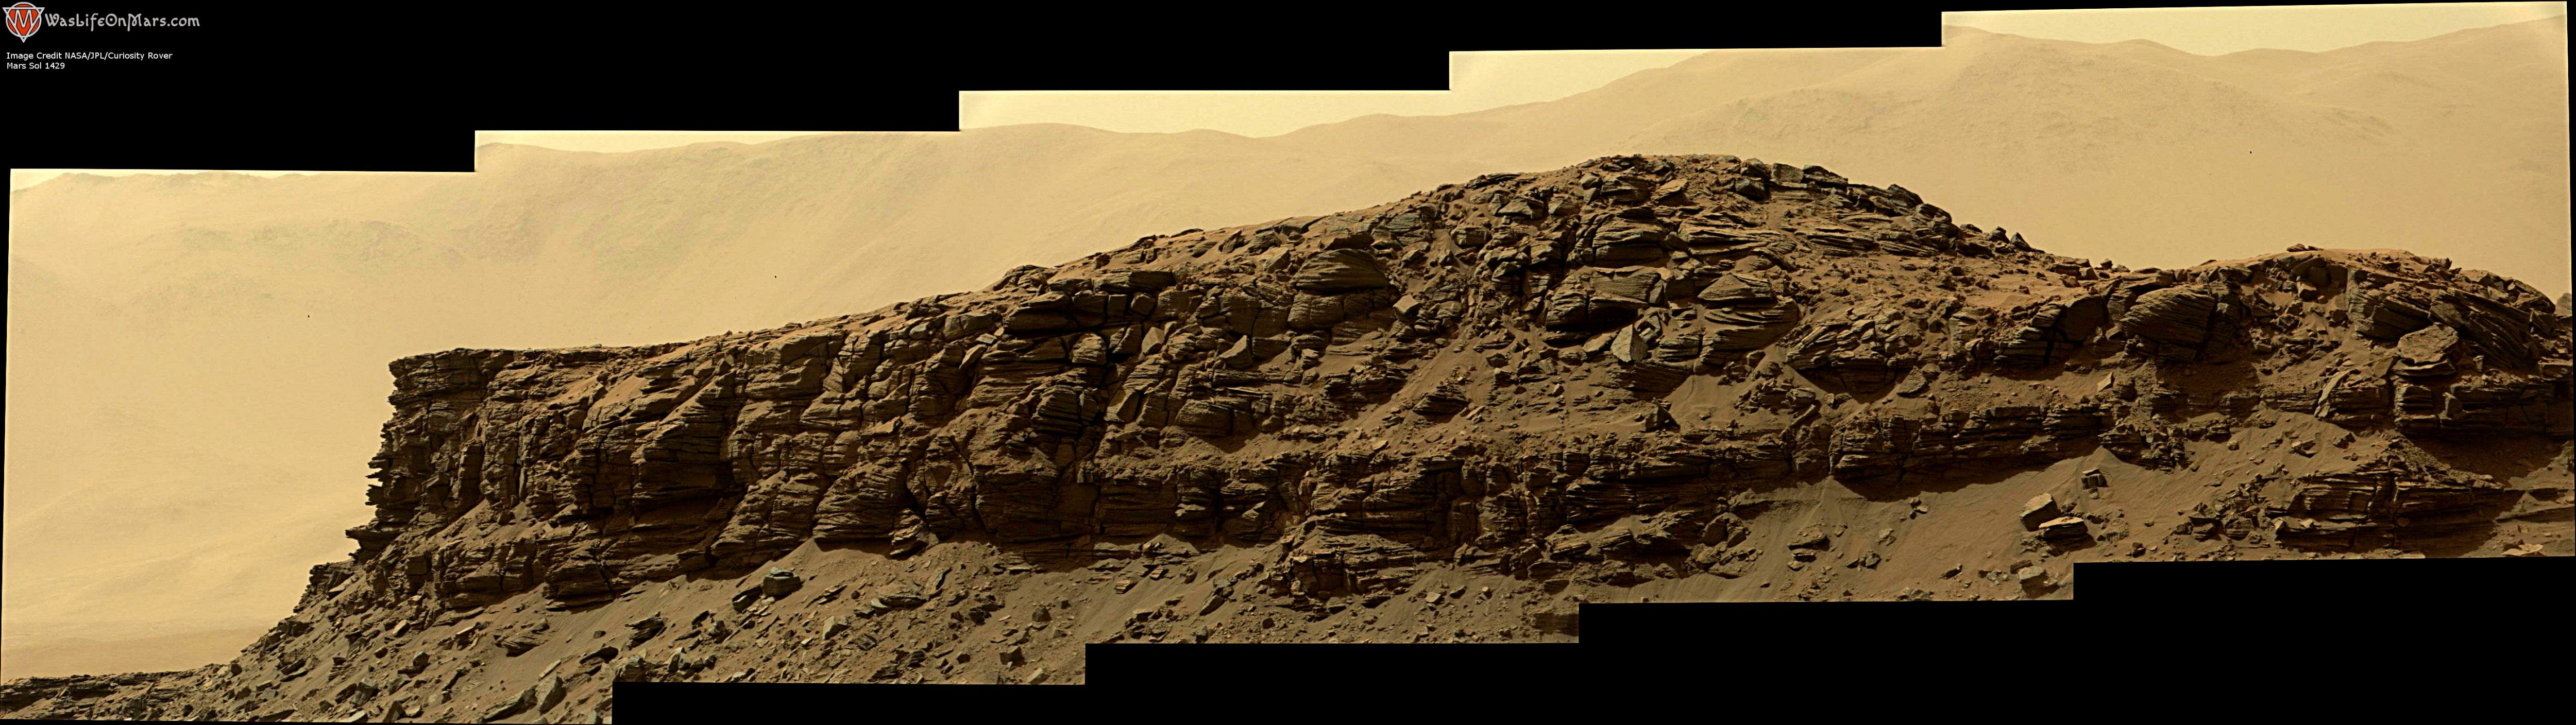 panoramic curiosity rover view 2e - sol 1429 - was life on mars